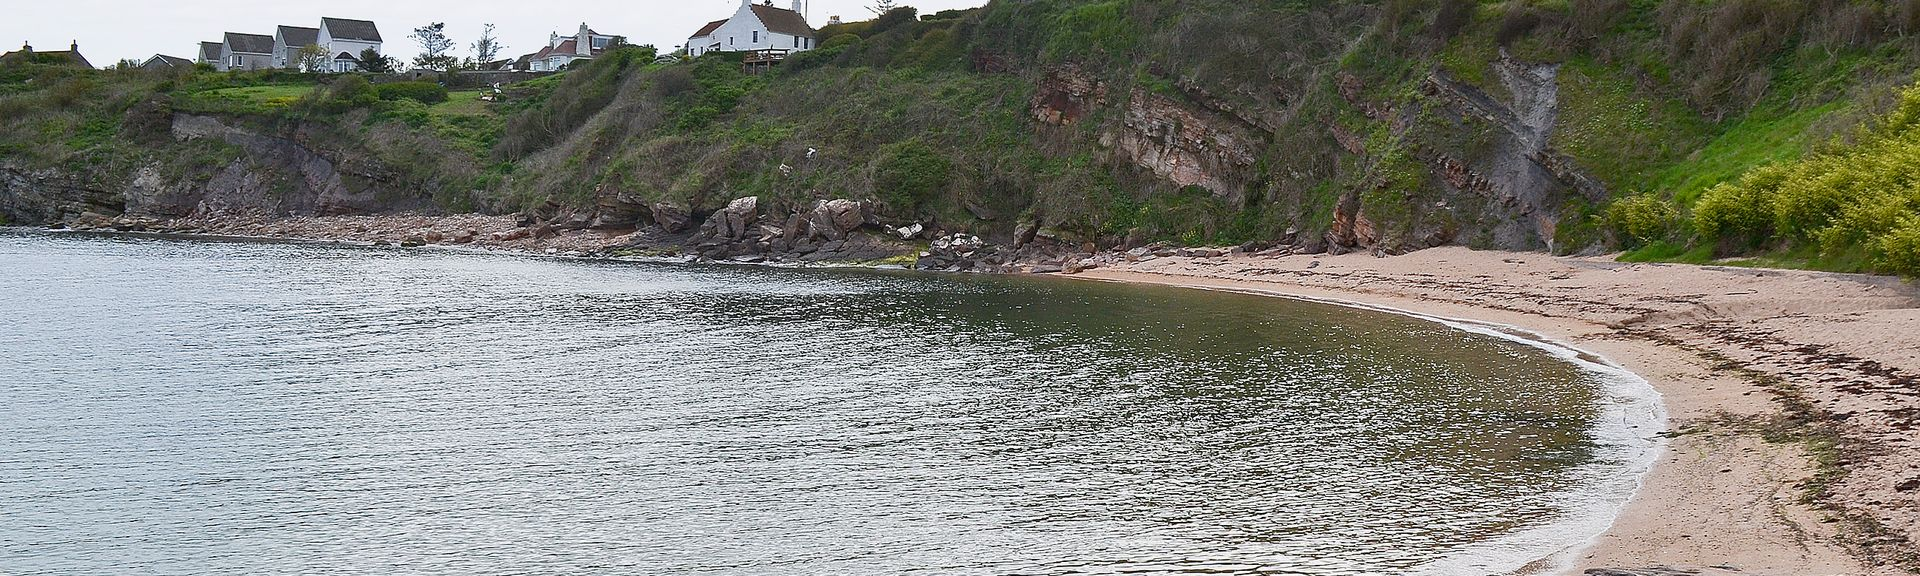 Yellowcraigs, North Berwick, Schotland, Verenigd Koninkrijk